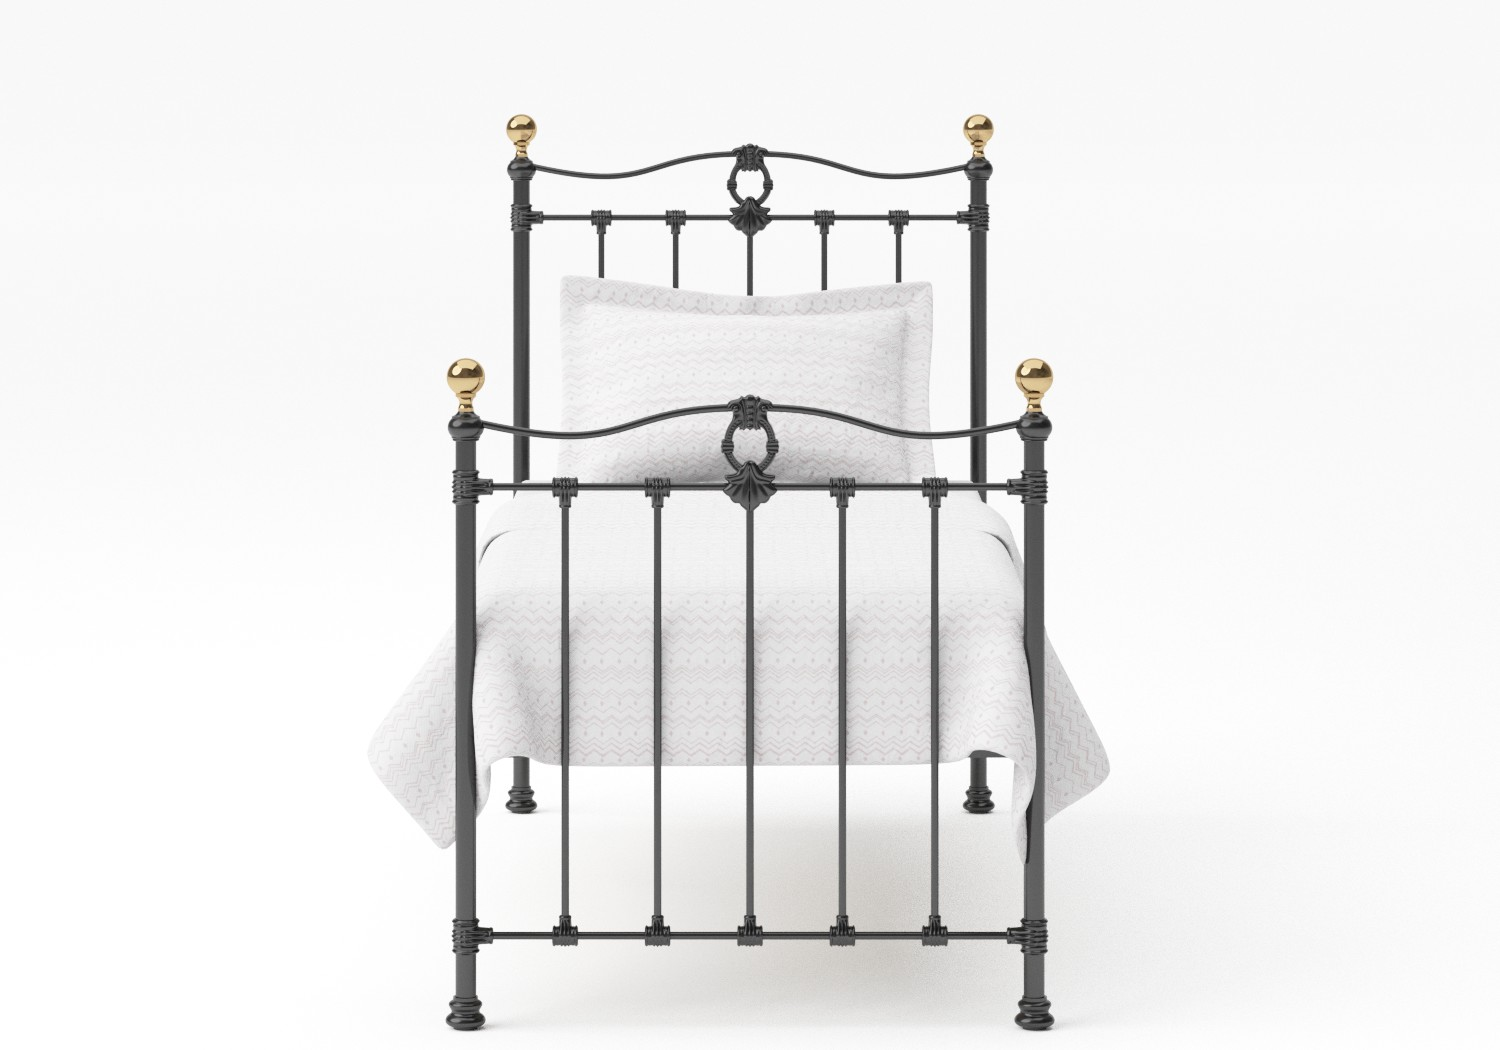 Tulsk Single Iron/Metal Bed in Satin Black with Brass details